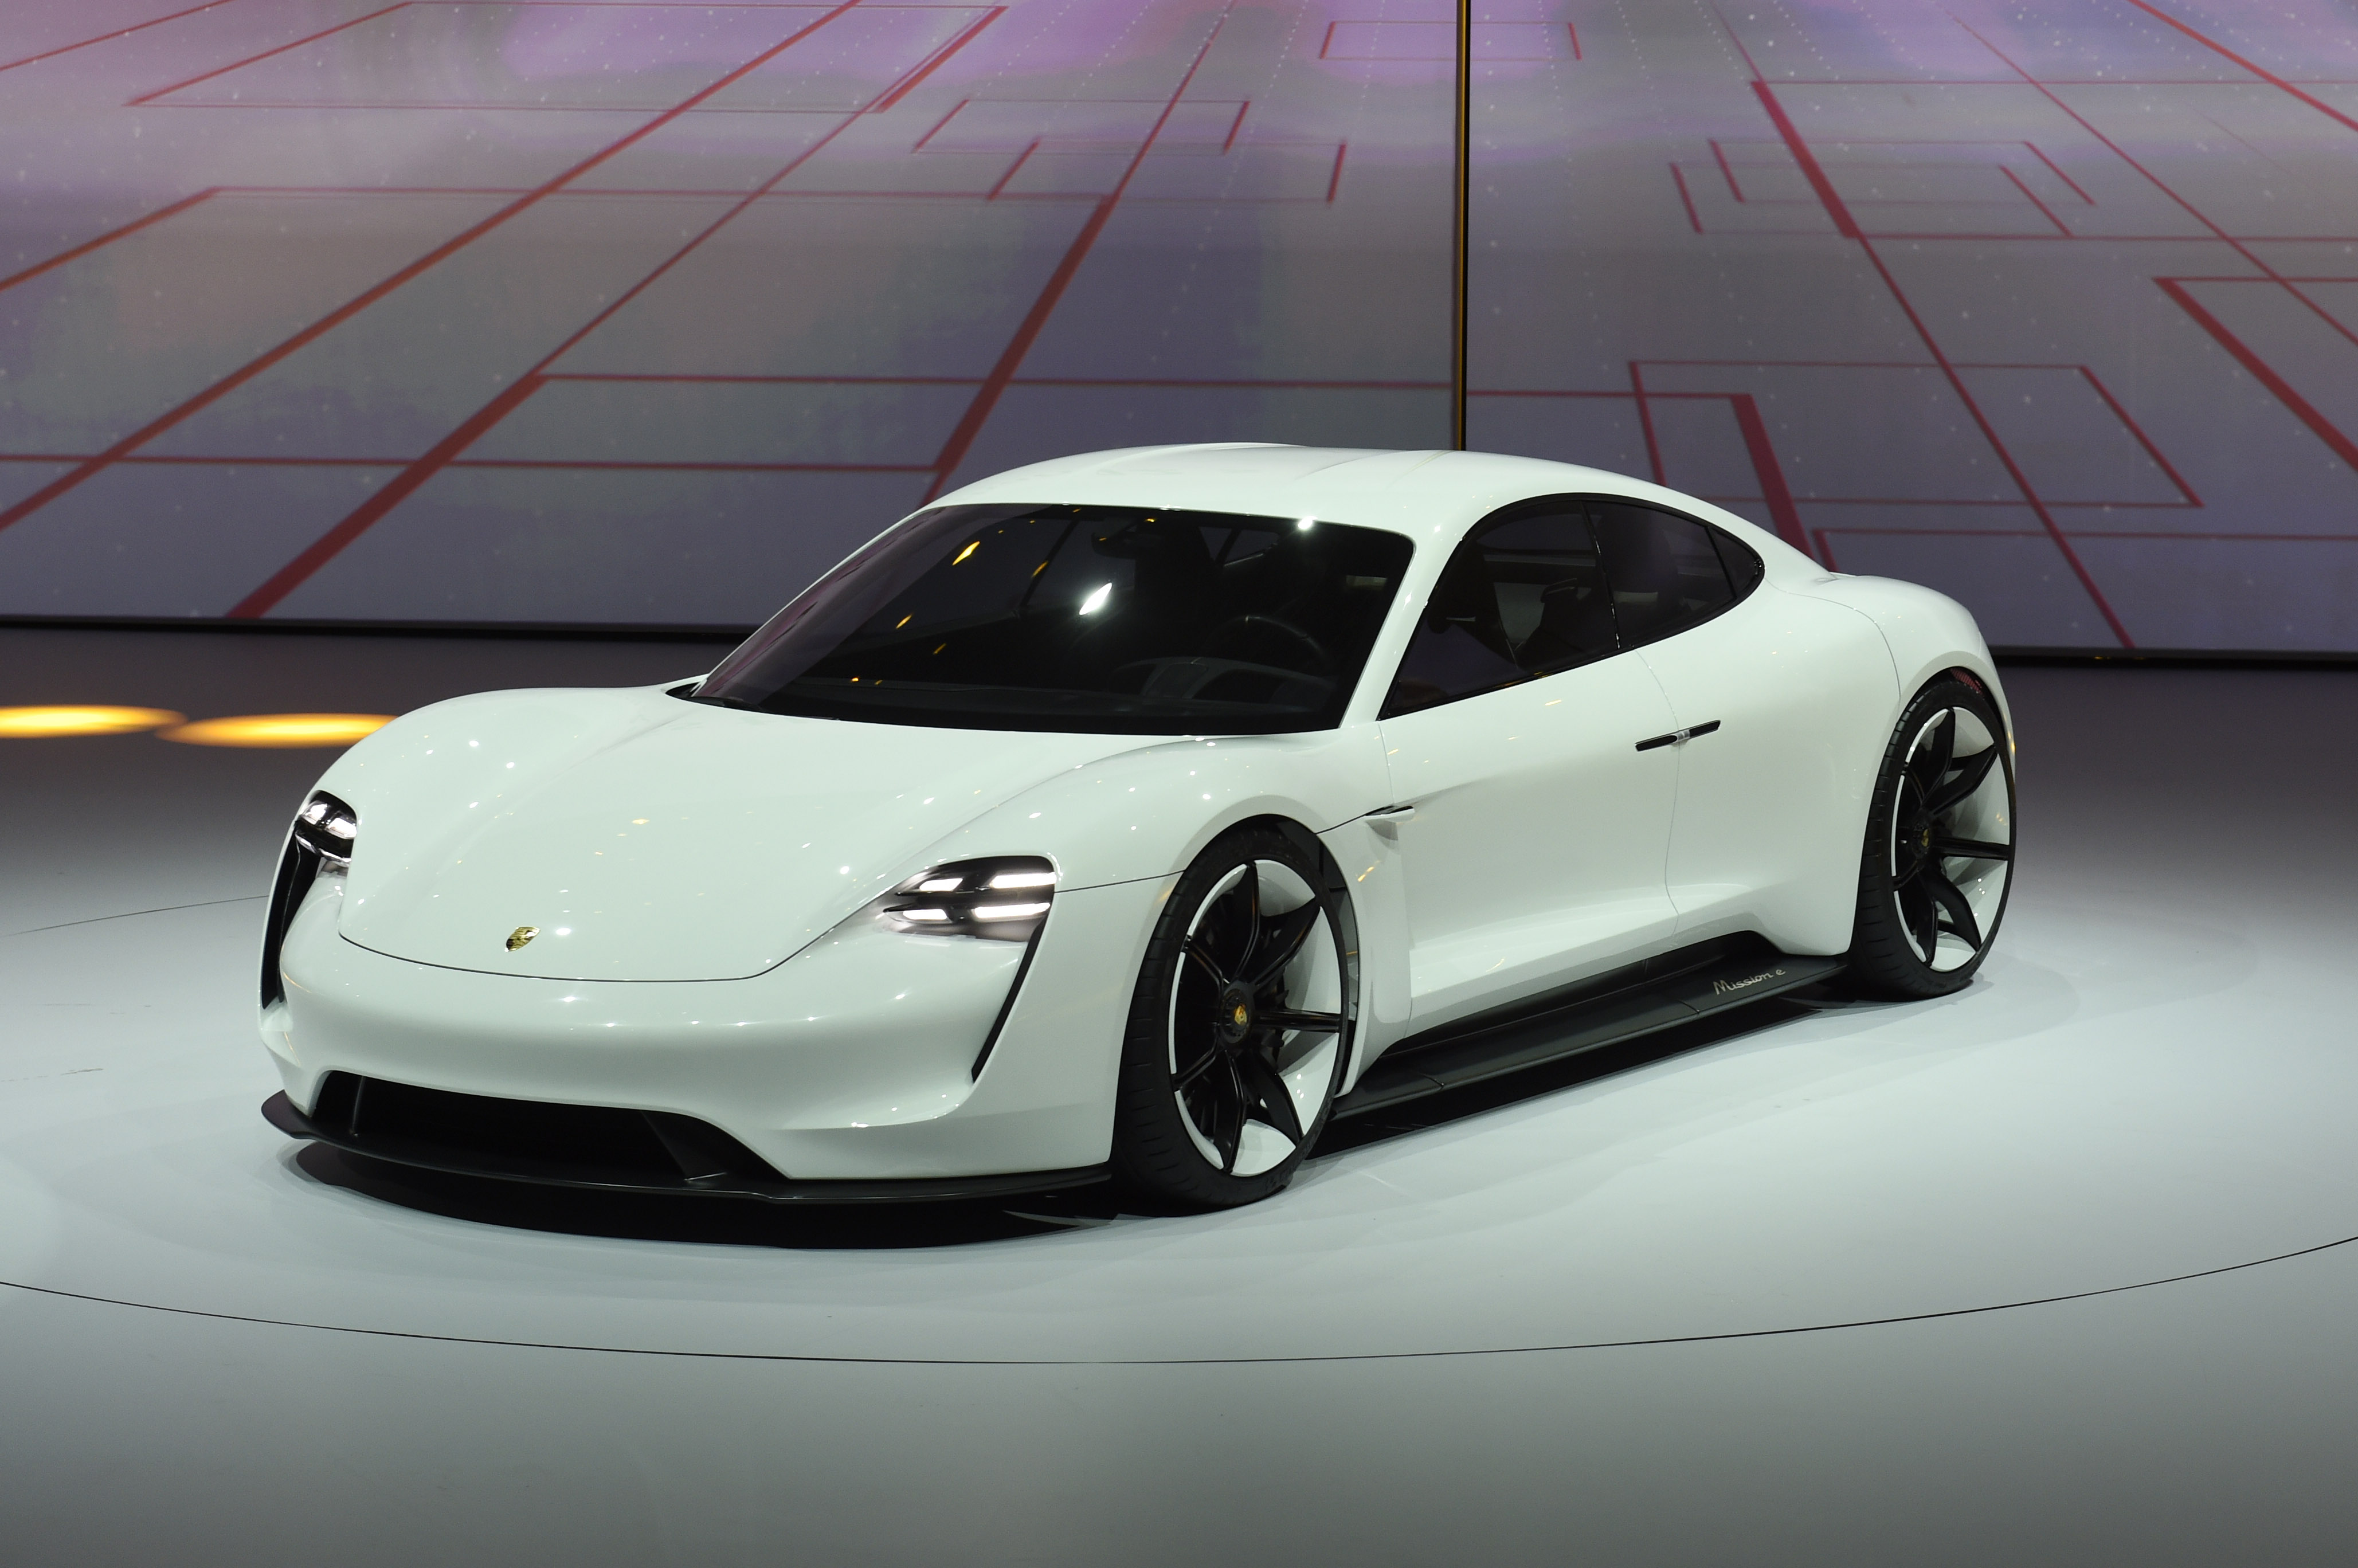 A Porsche Mission E is presented during the Volkswagen group night on the eve of the Frankfurt Auto Show IAA in Frankfurt, Germany, Monday, Sept. 14, 2015. (AP Photo/Jens Meyer)